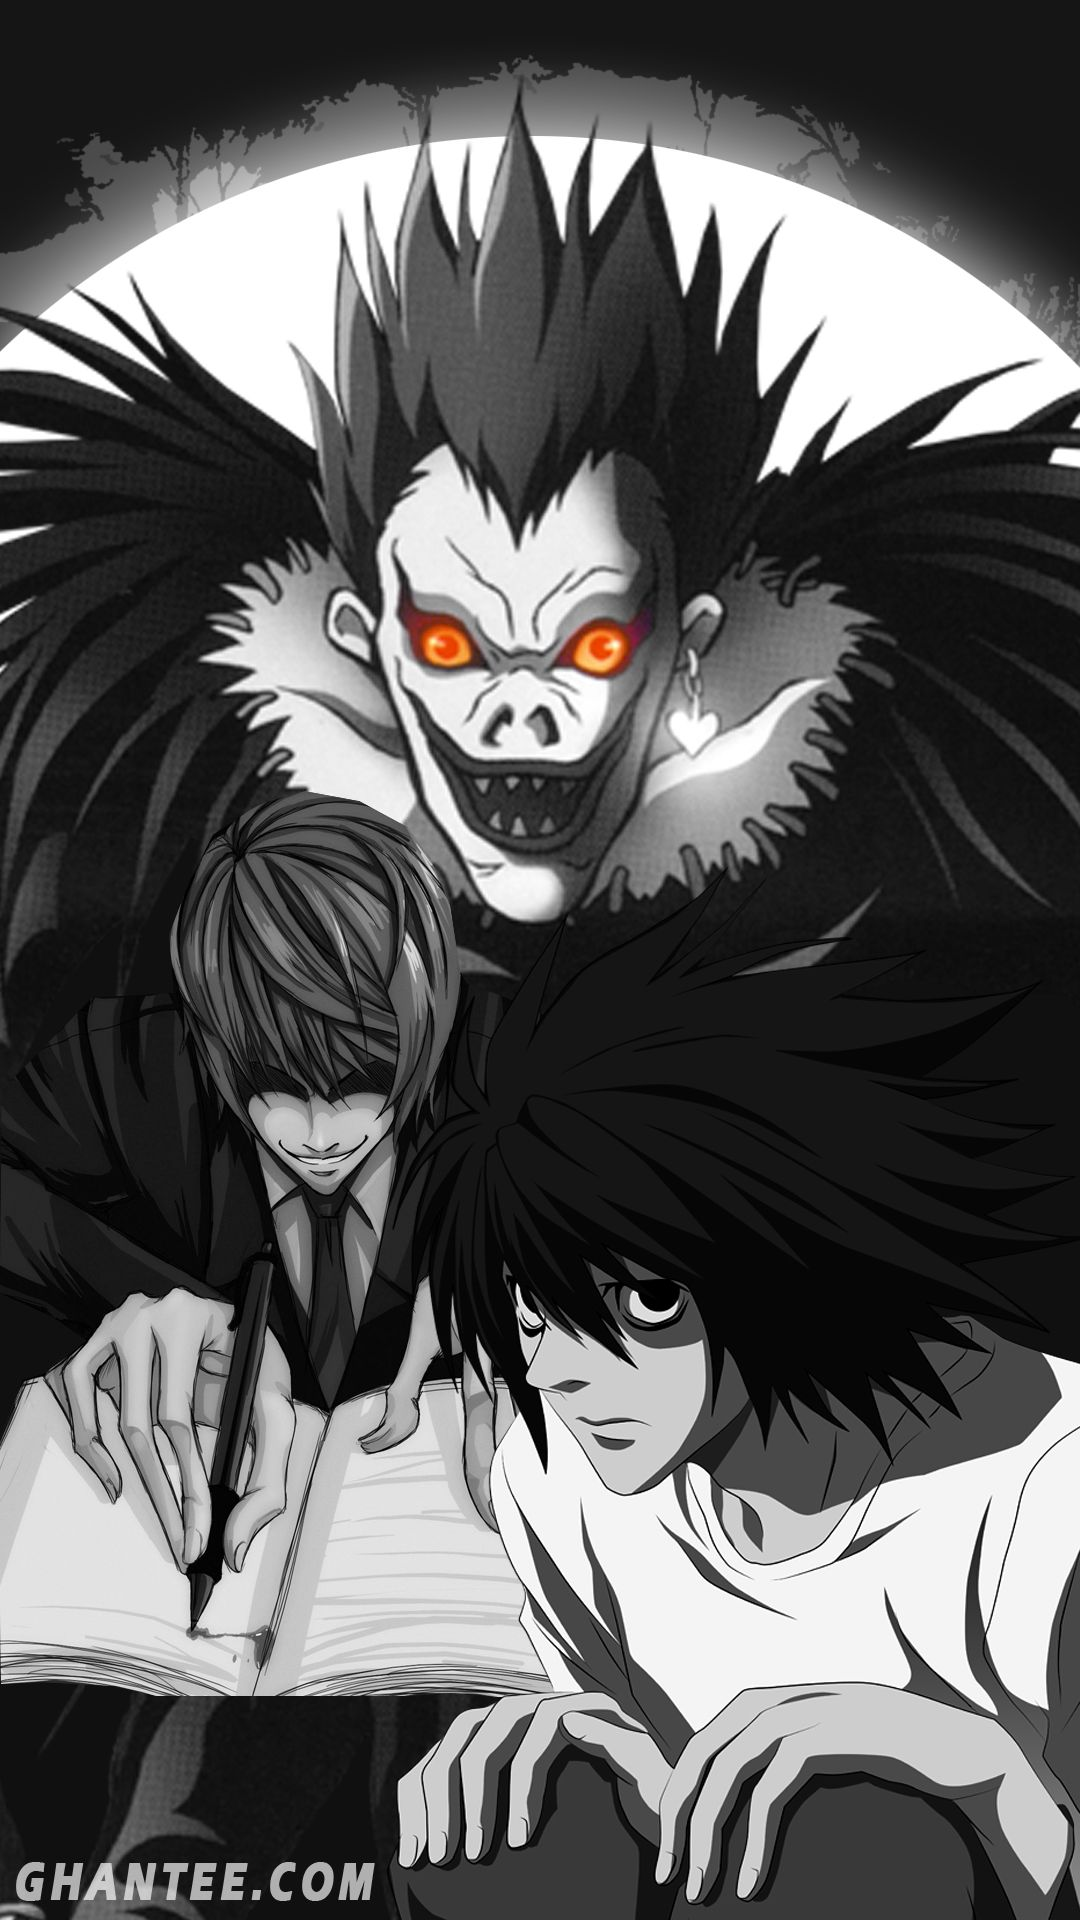 Anime Wallpaper Android Deathnote In 2020 Death Note Anime Wallpaper Anime